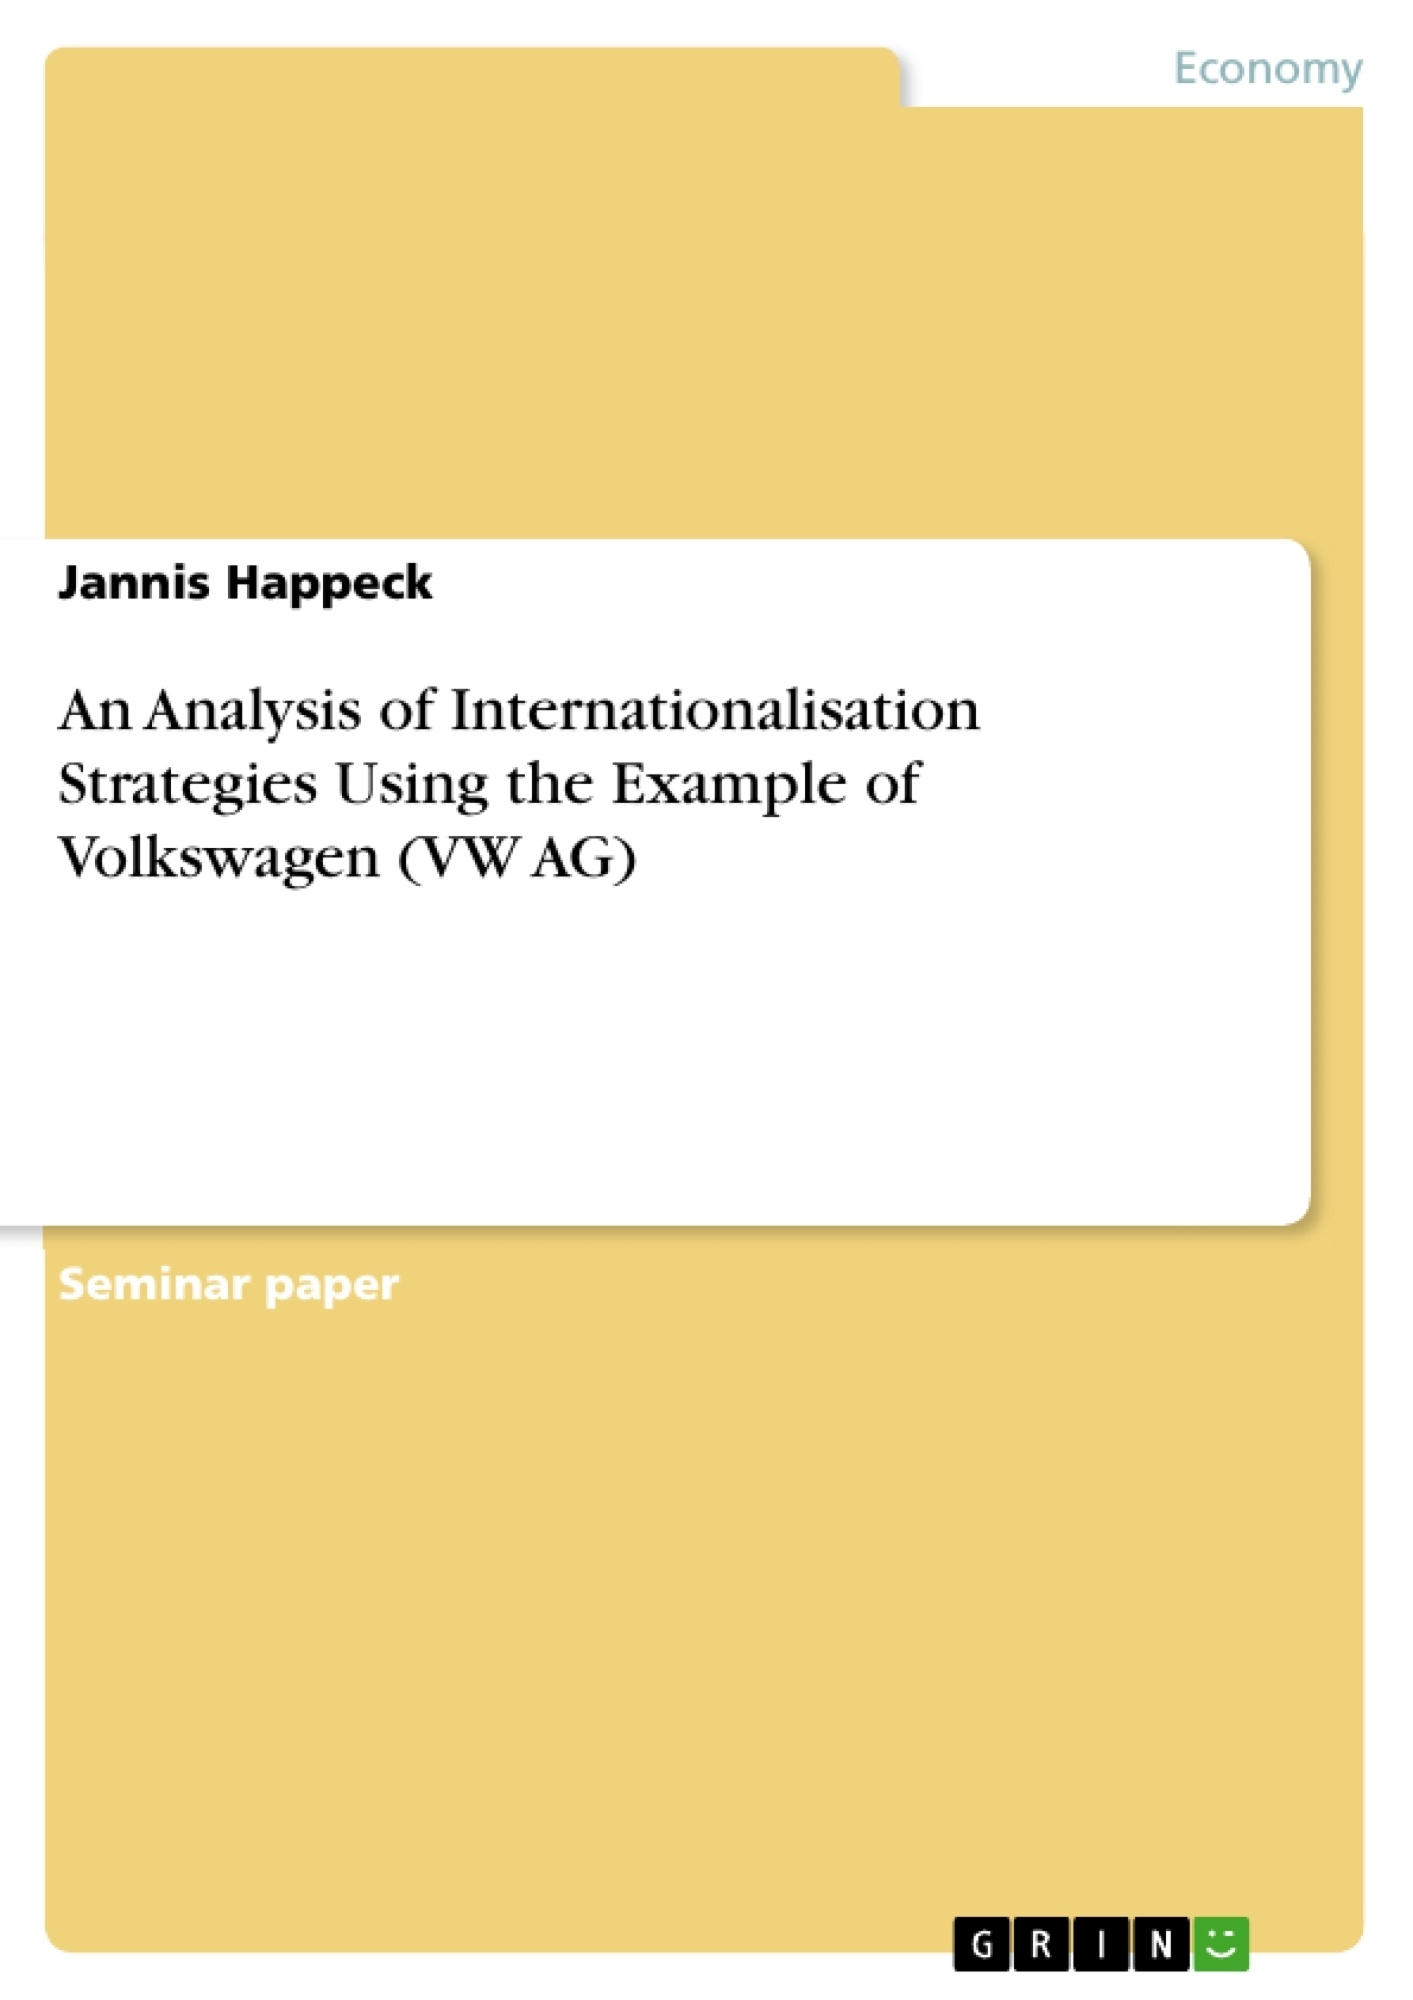 An Analysis of Internationalisation Strategies Using the Example ...